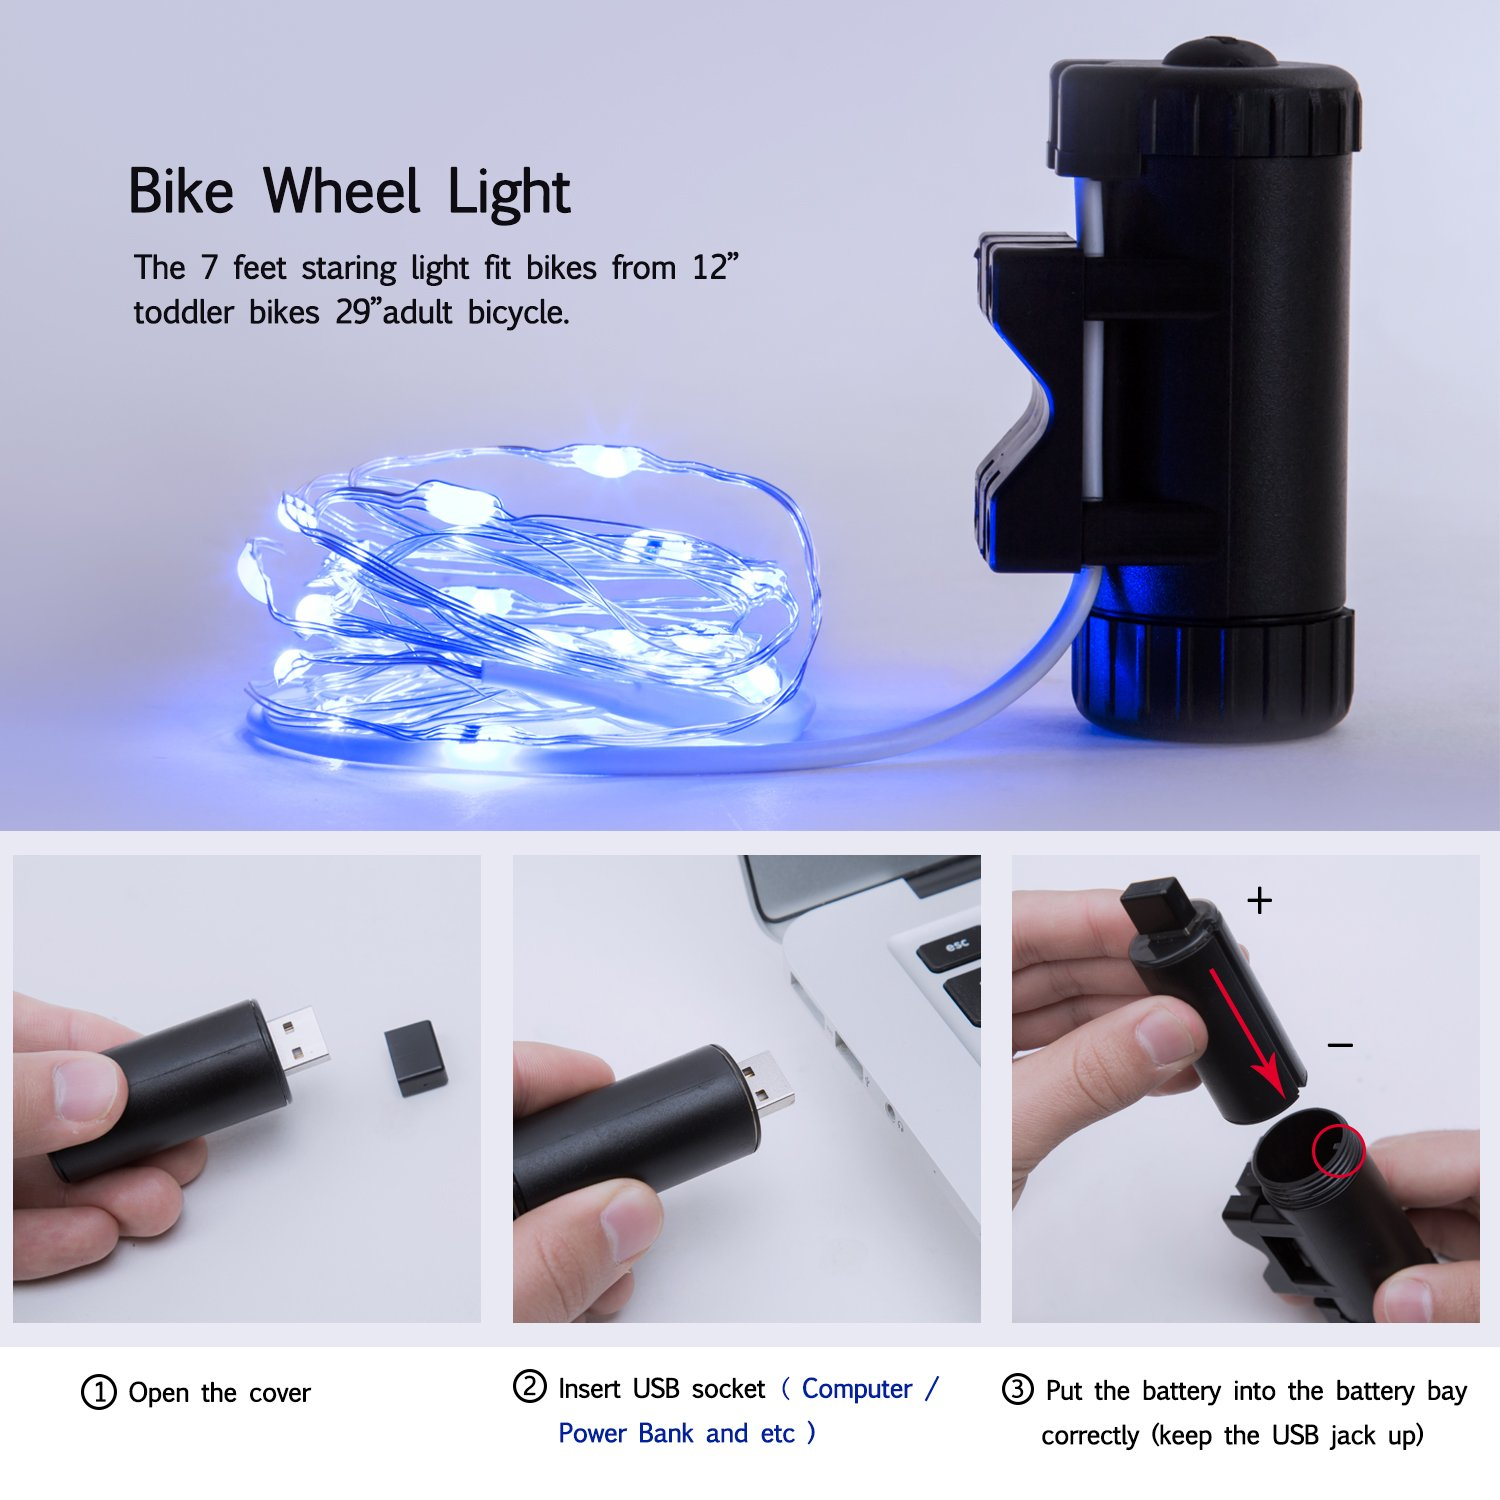 Exwell Bike Wheel Lights, 7 Colors in 1 Bike lights,Safety at Night,Switch 9 Modes LED Bike Accessories Lights, USB rechargeable 1 PACK by Exwell (Image #4)